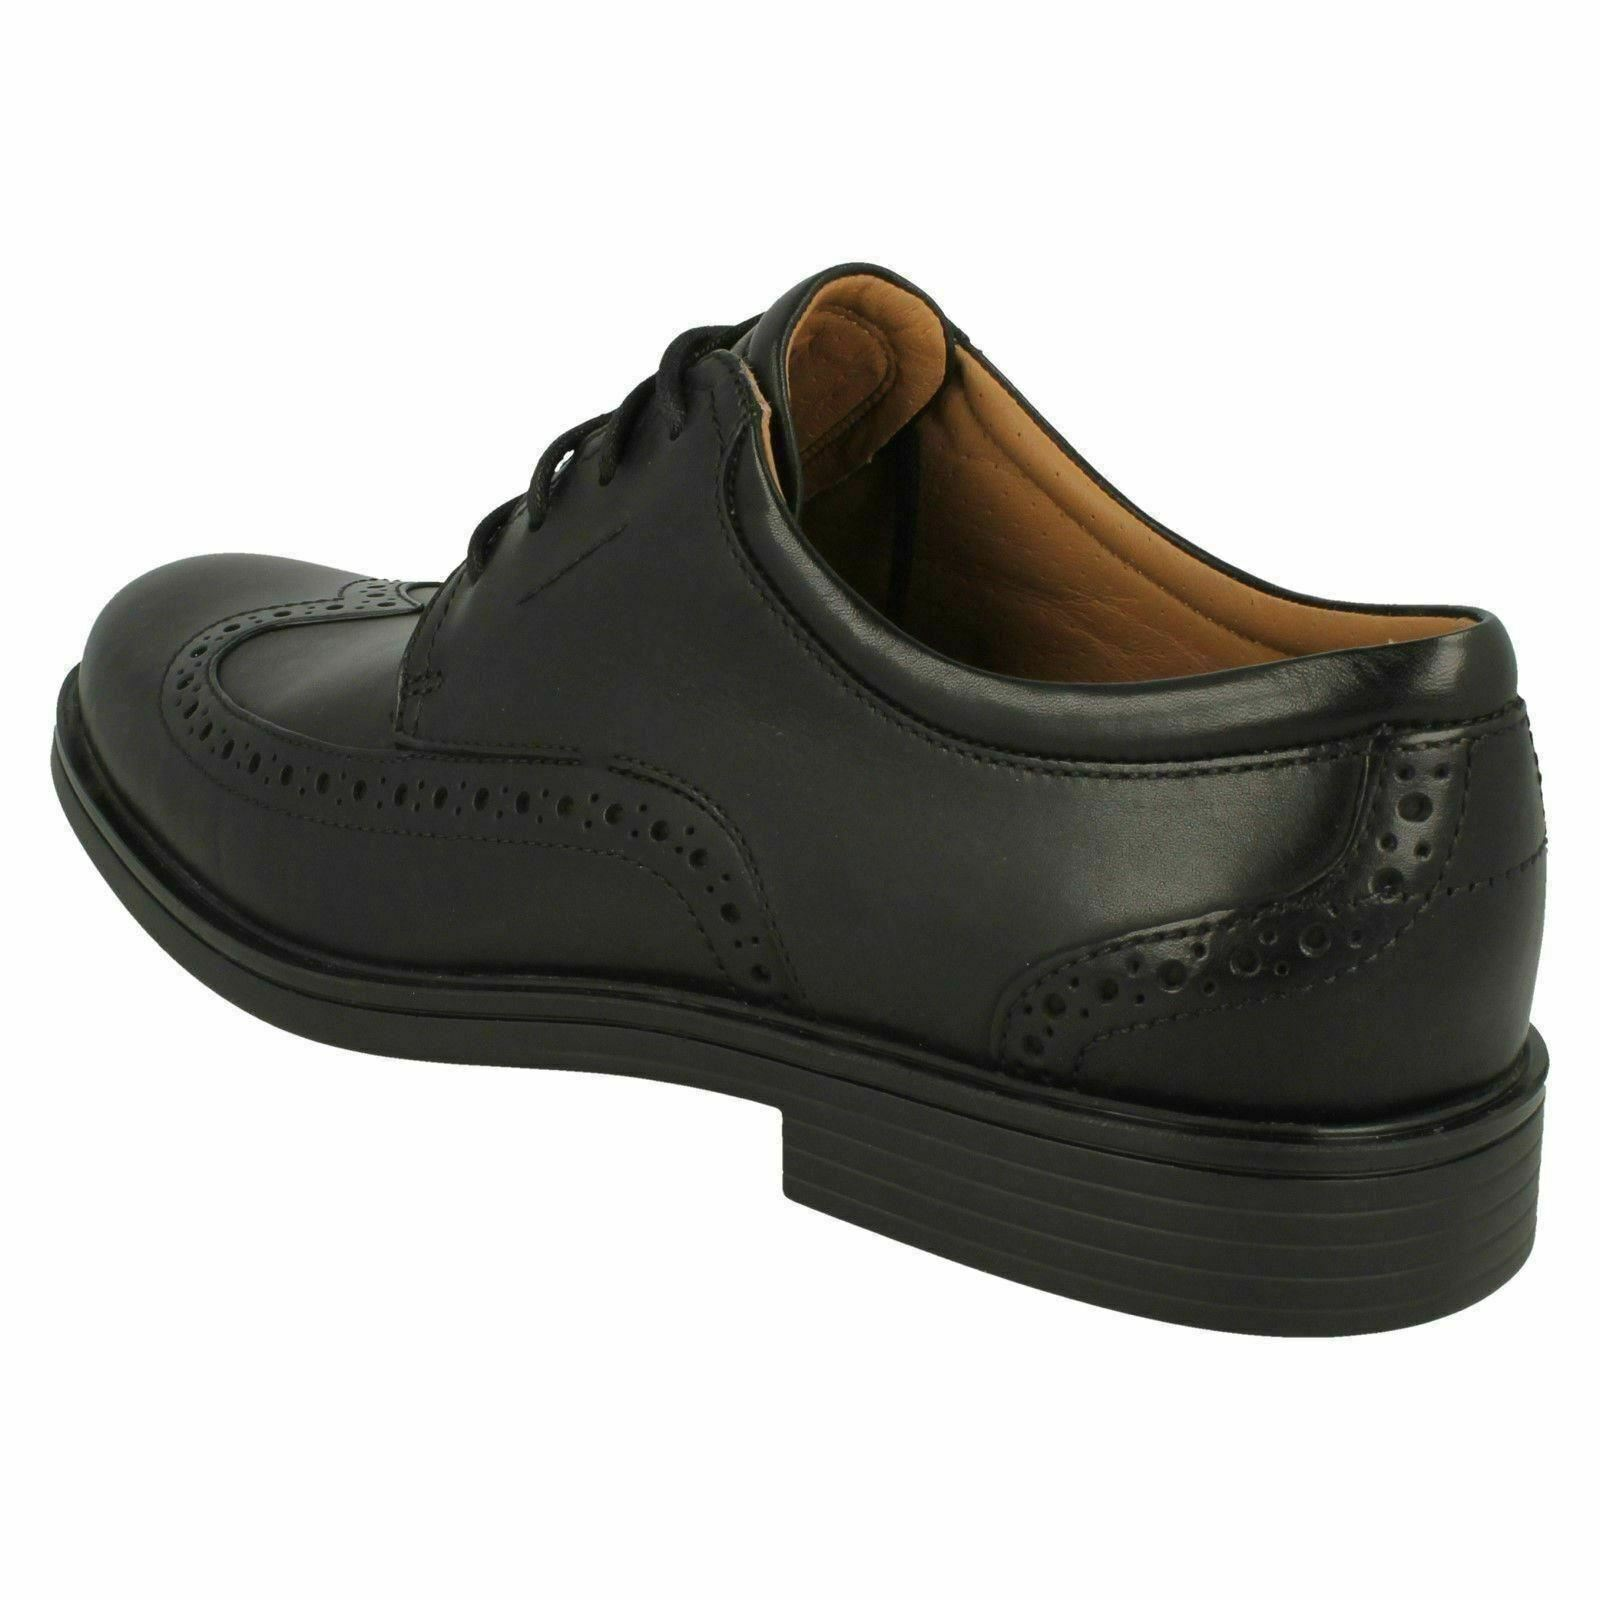 UN ALDRIC WING MENS CLARKS LACE UP CASUAL FORMAL FORMAL FORMAL LEATHER BROGUES SMART schuhe    feca97